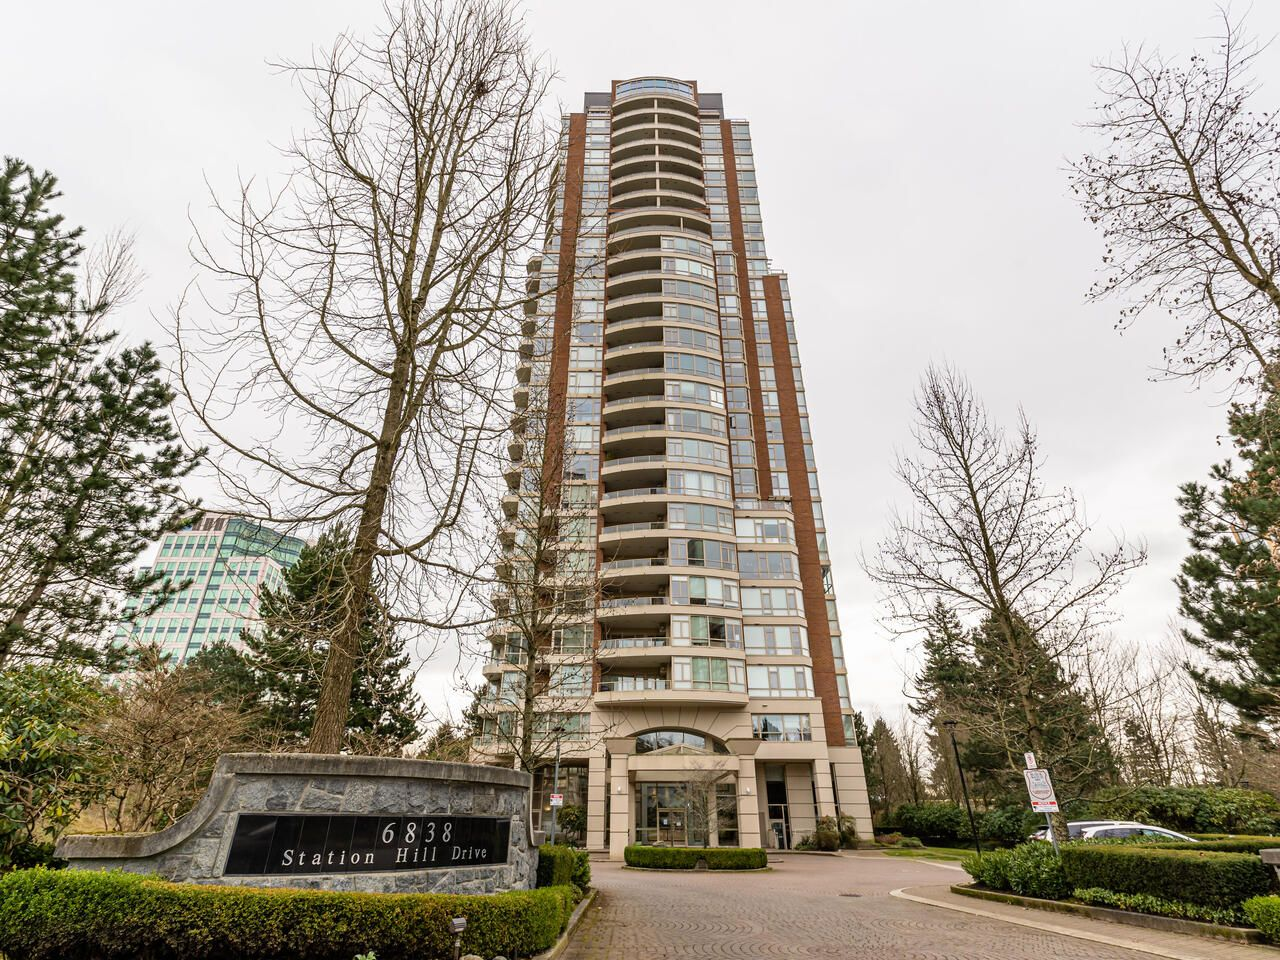 Main Photo: 1804 6838 STATION HILL DRIVE in Burnaby: South Slope Condo for sale (Burnaby South)  : MLS®# R2544258